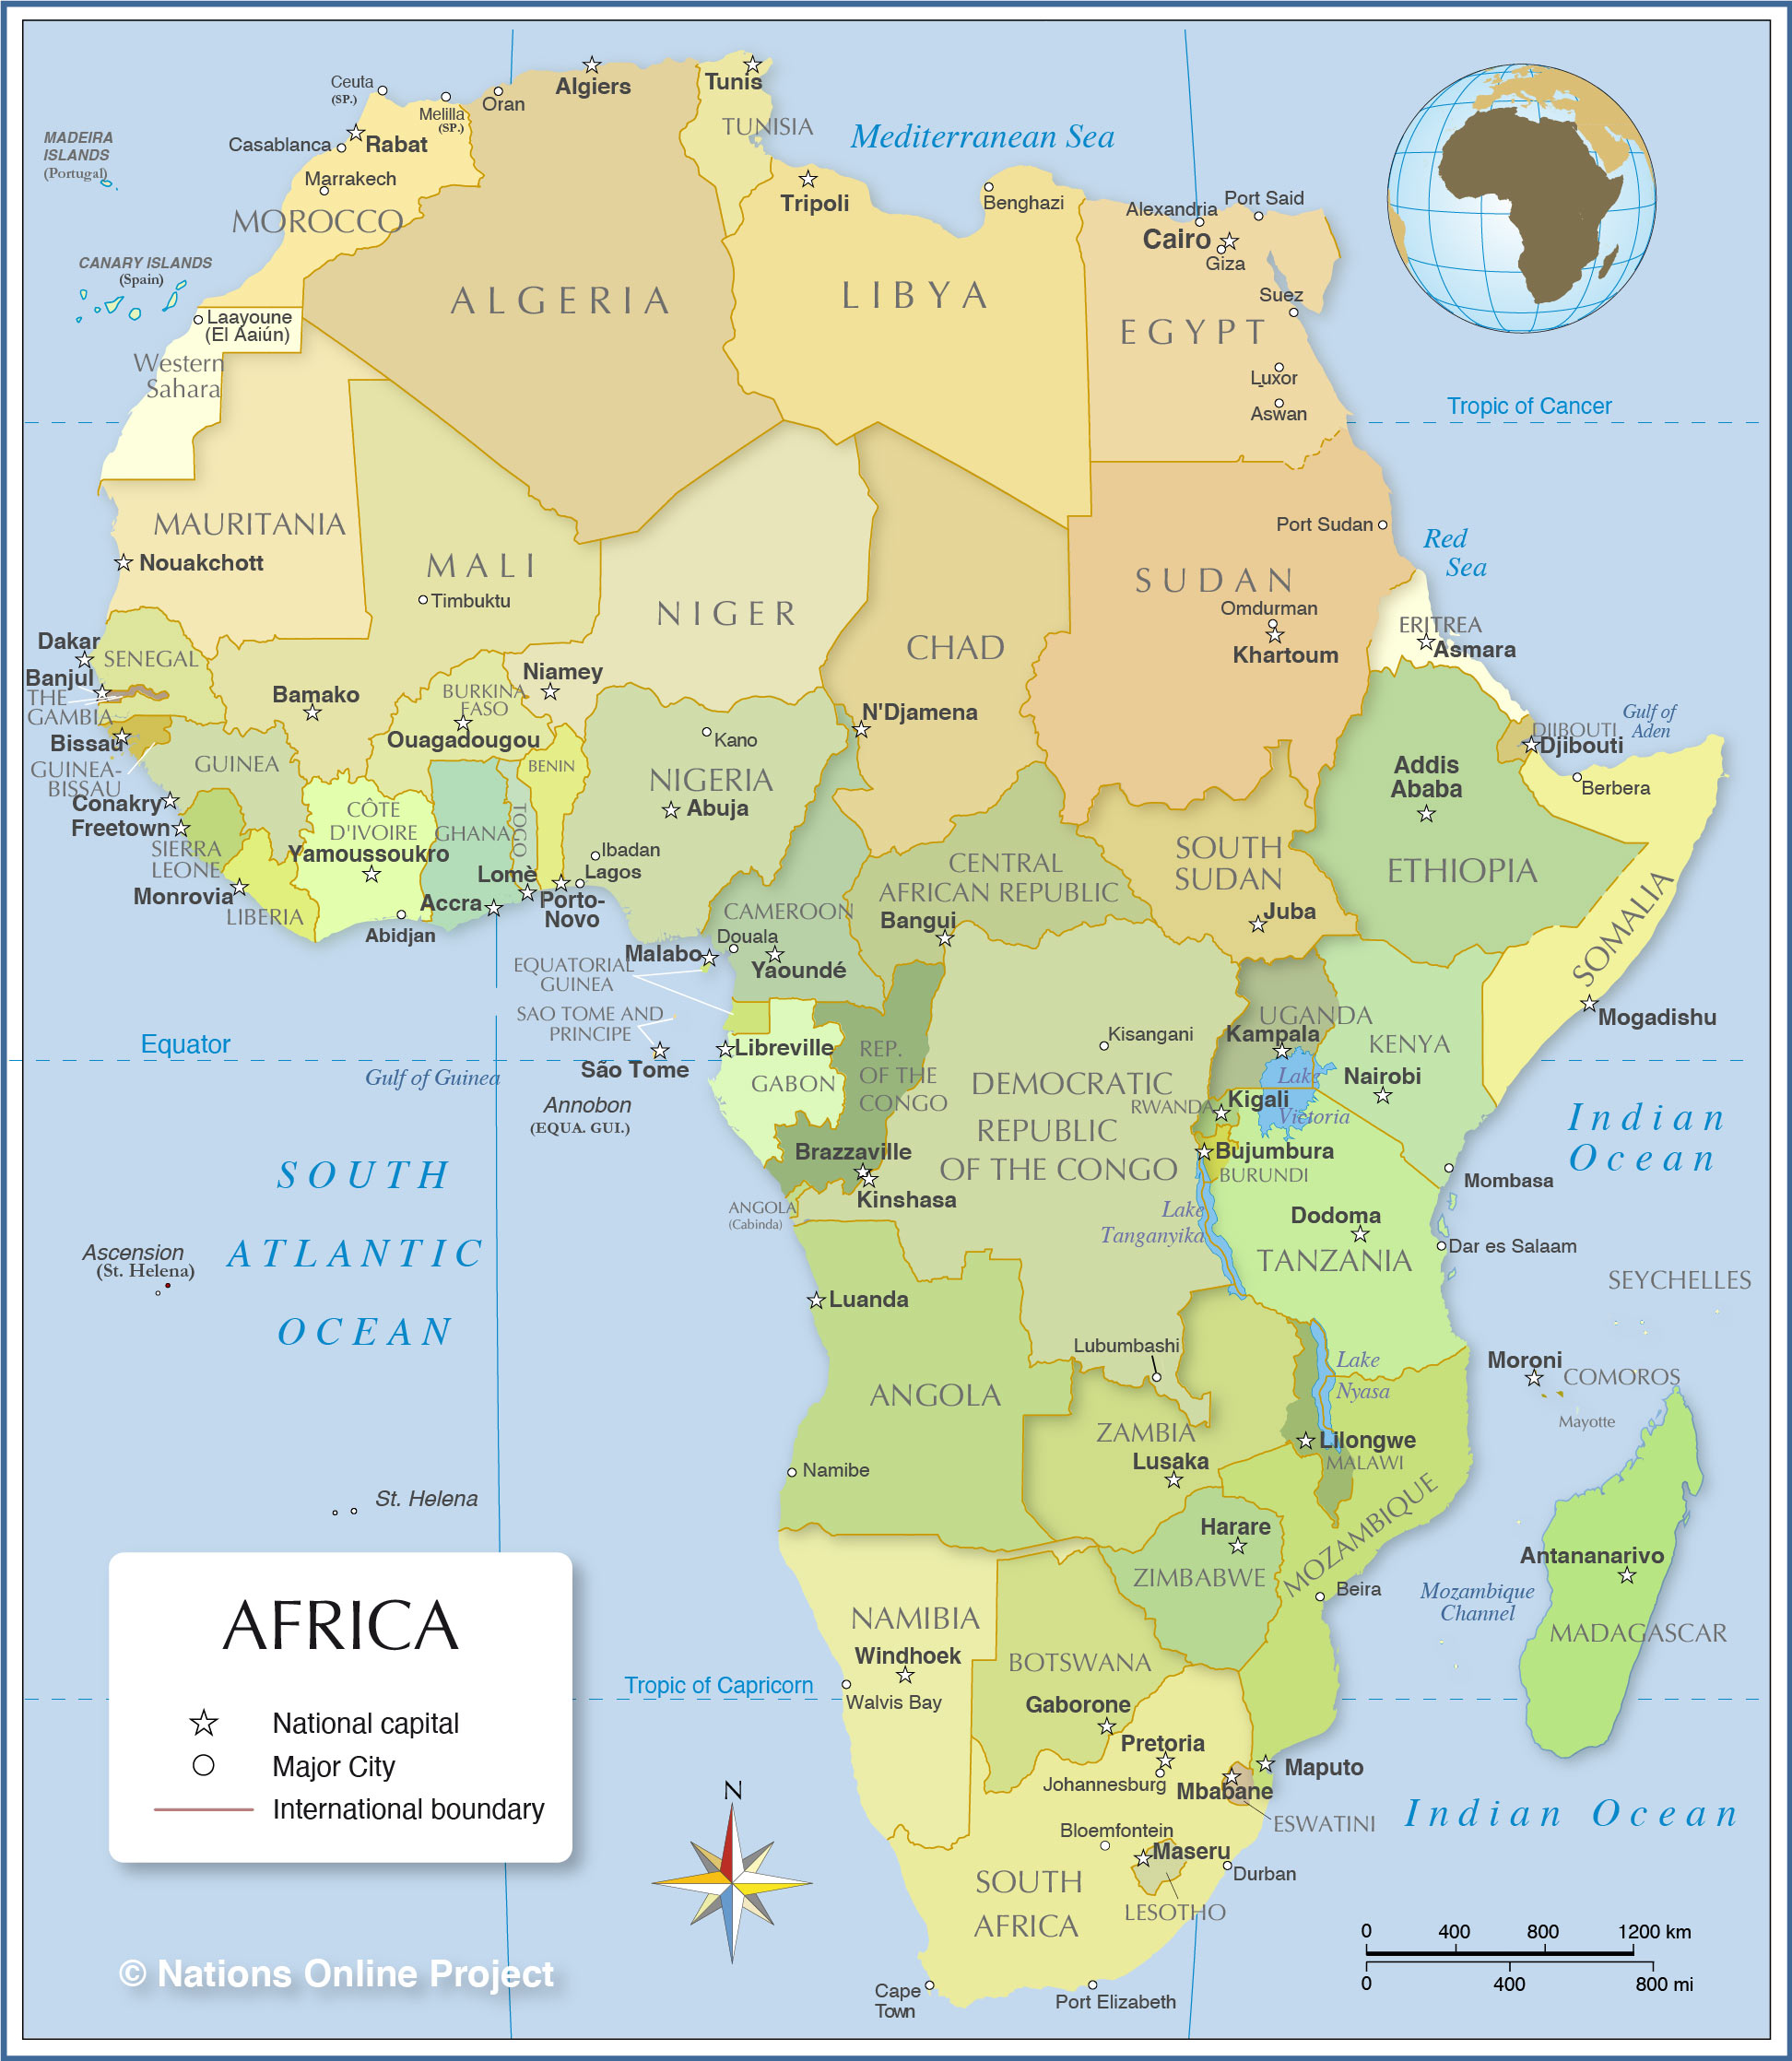 Map of Africa Countries of Africa Nations line Project